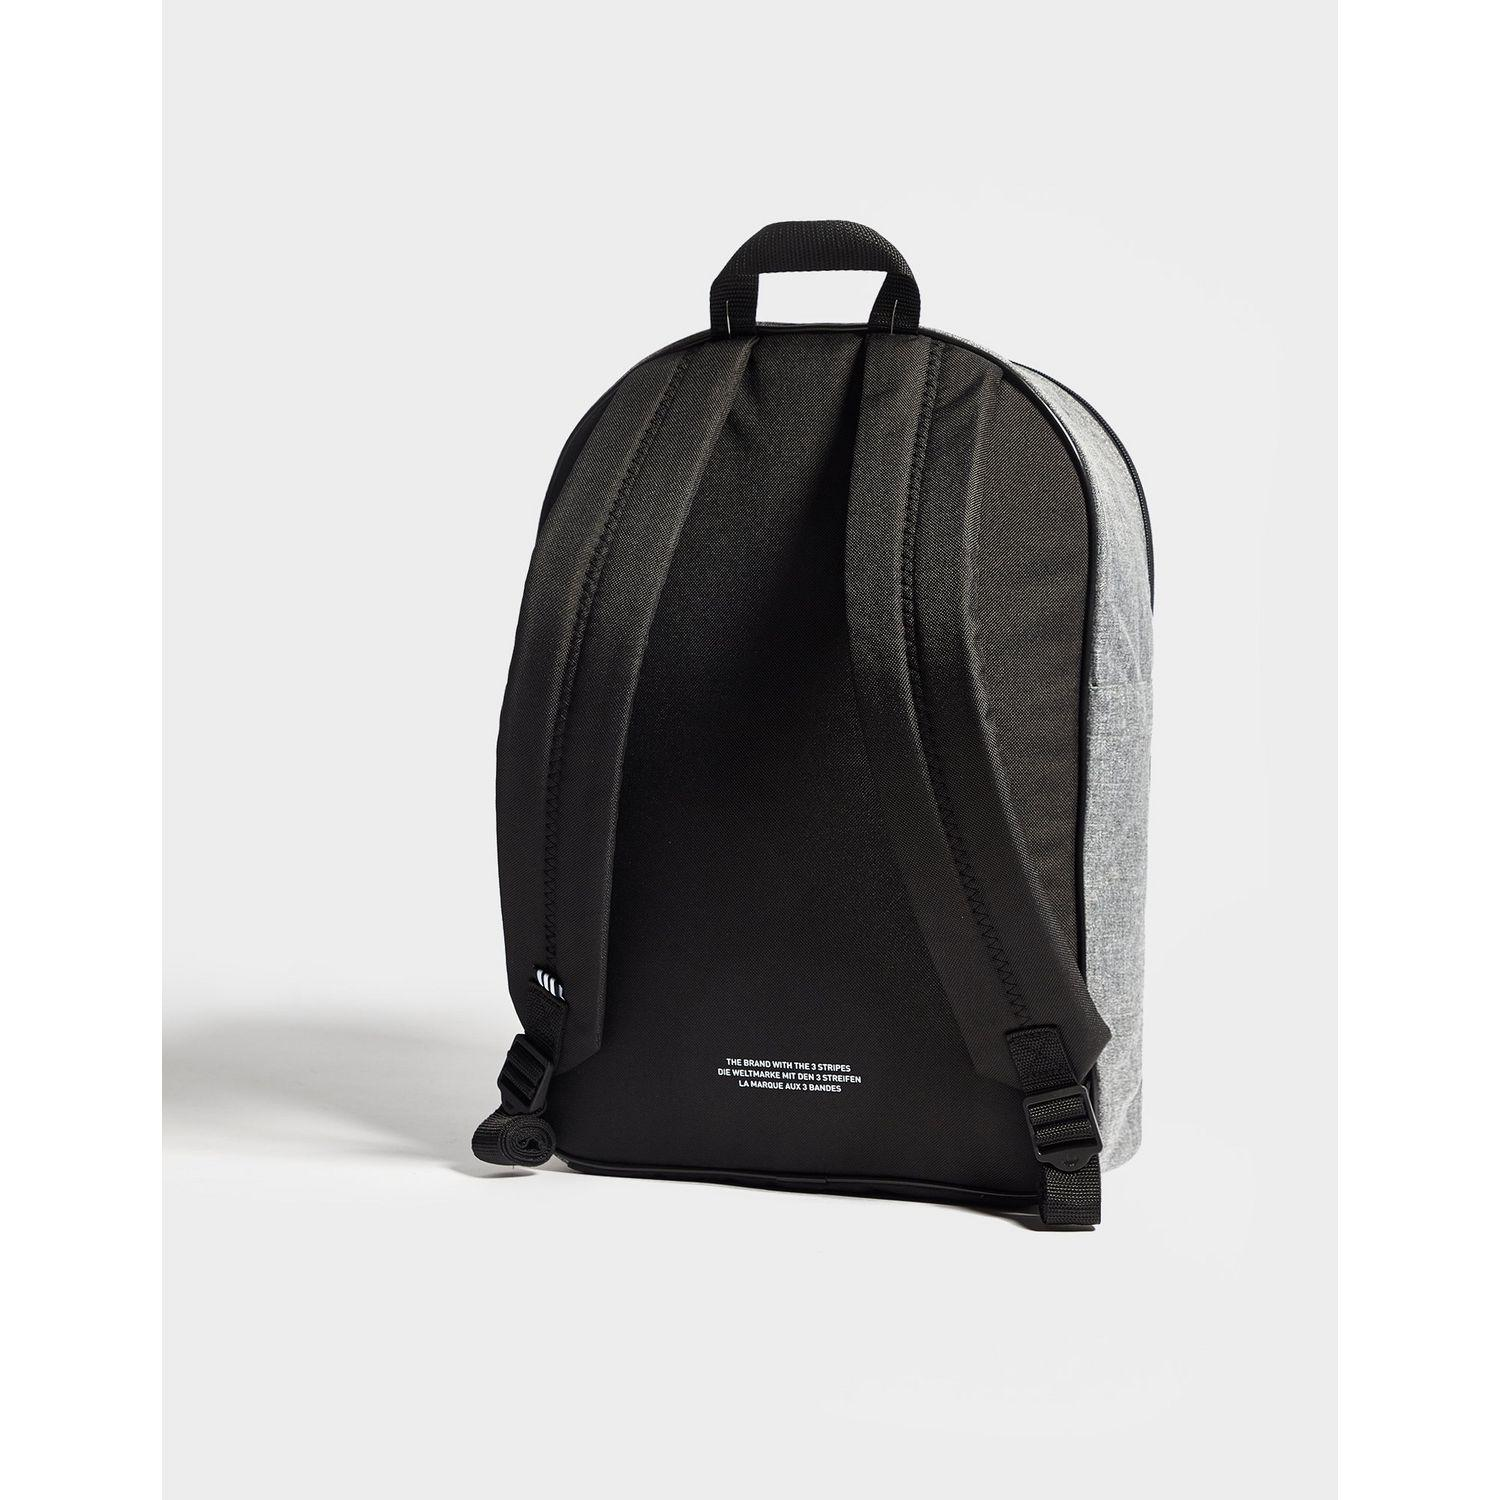 adidas Originals Synthetic Classic Trefoil Backpack in Grey/Black/White (Black) for Men